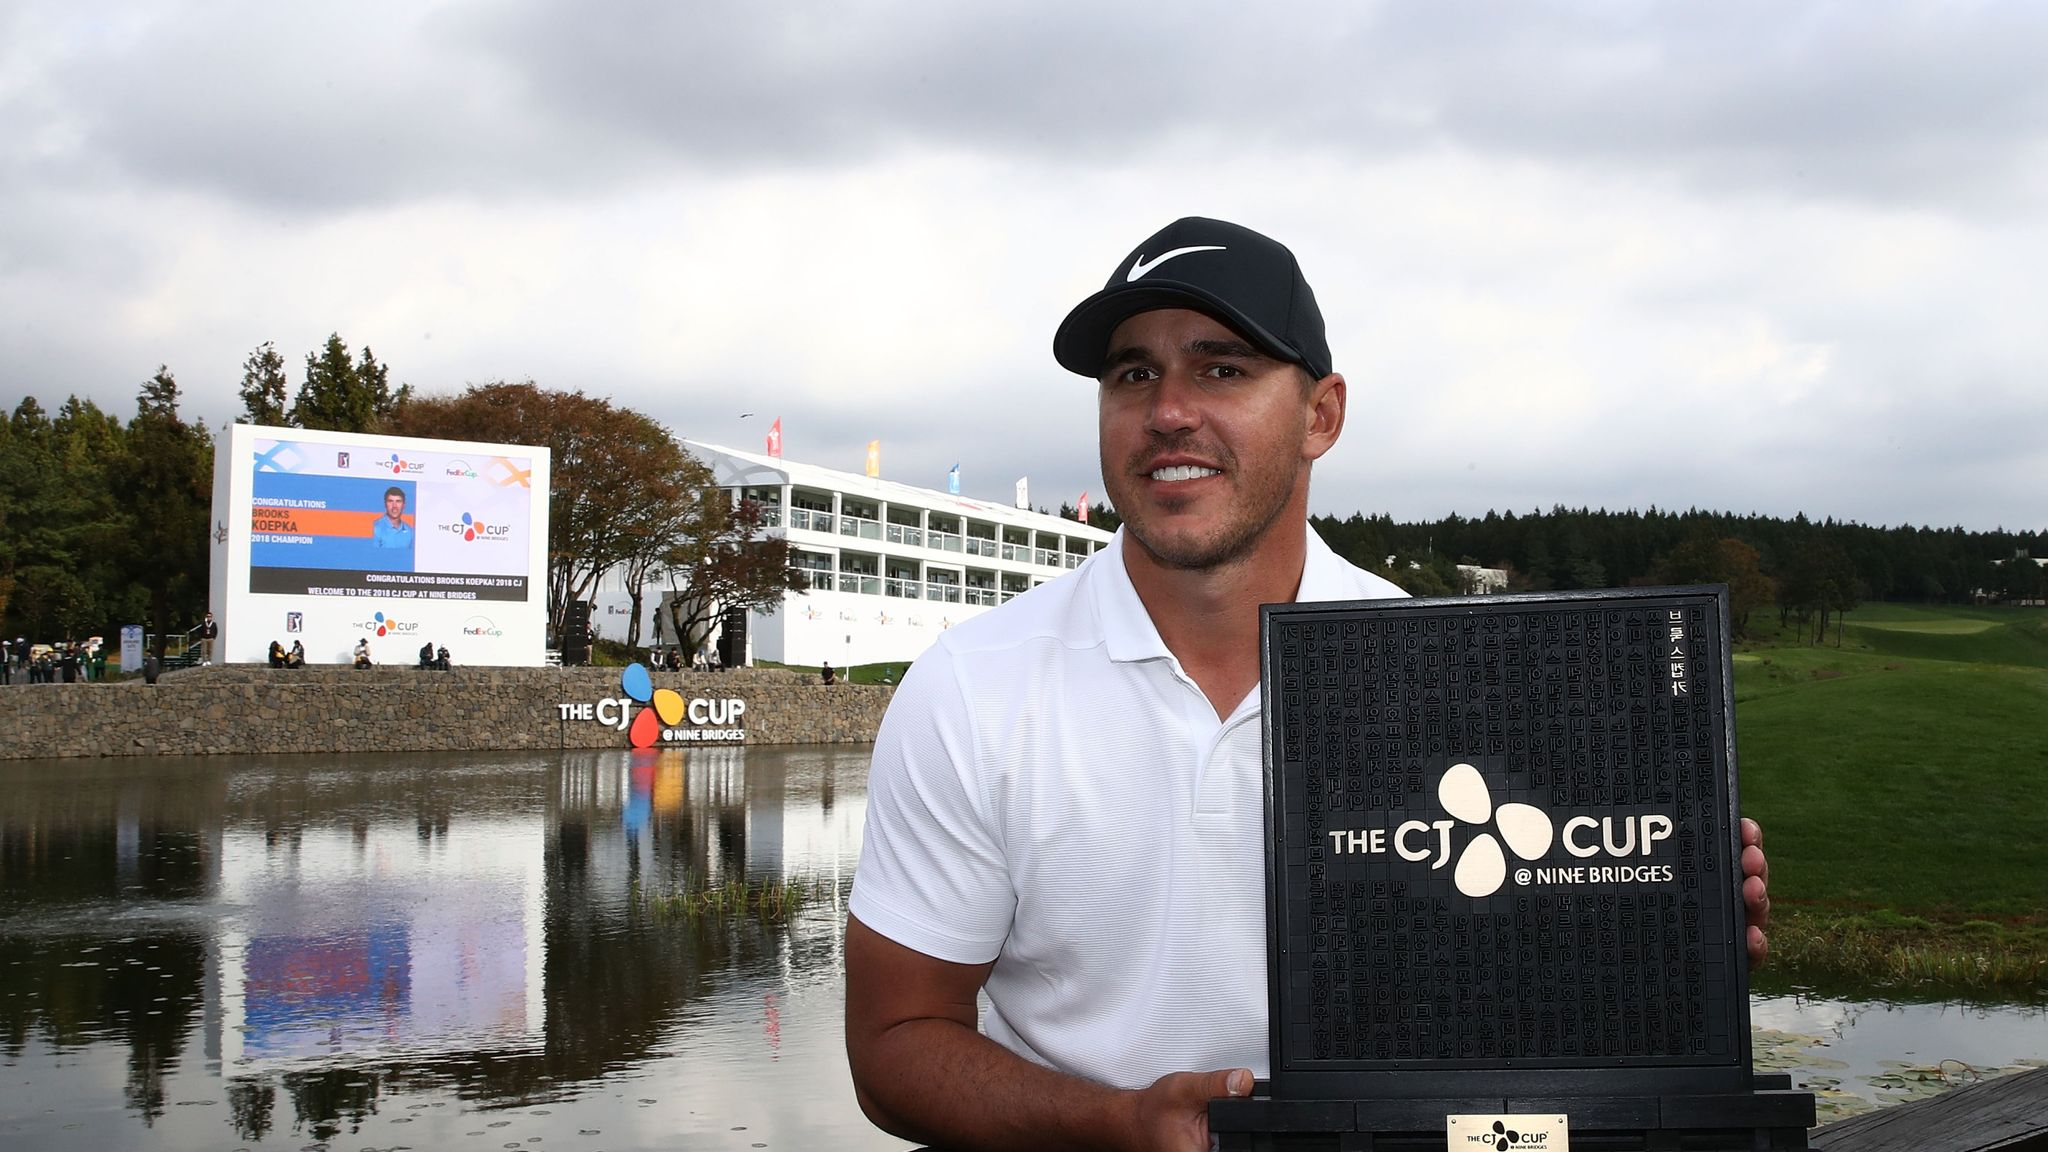 Brooks Koepka to become world No 1 for first time after CJ Cup title